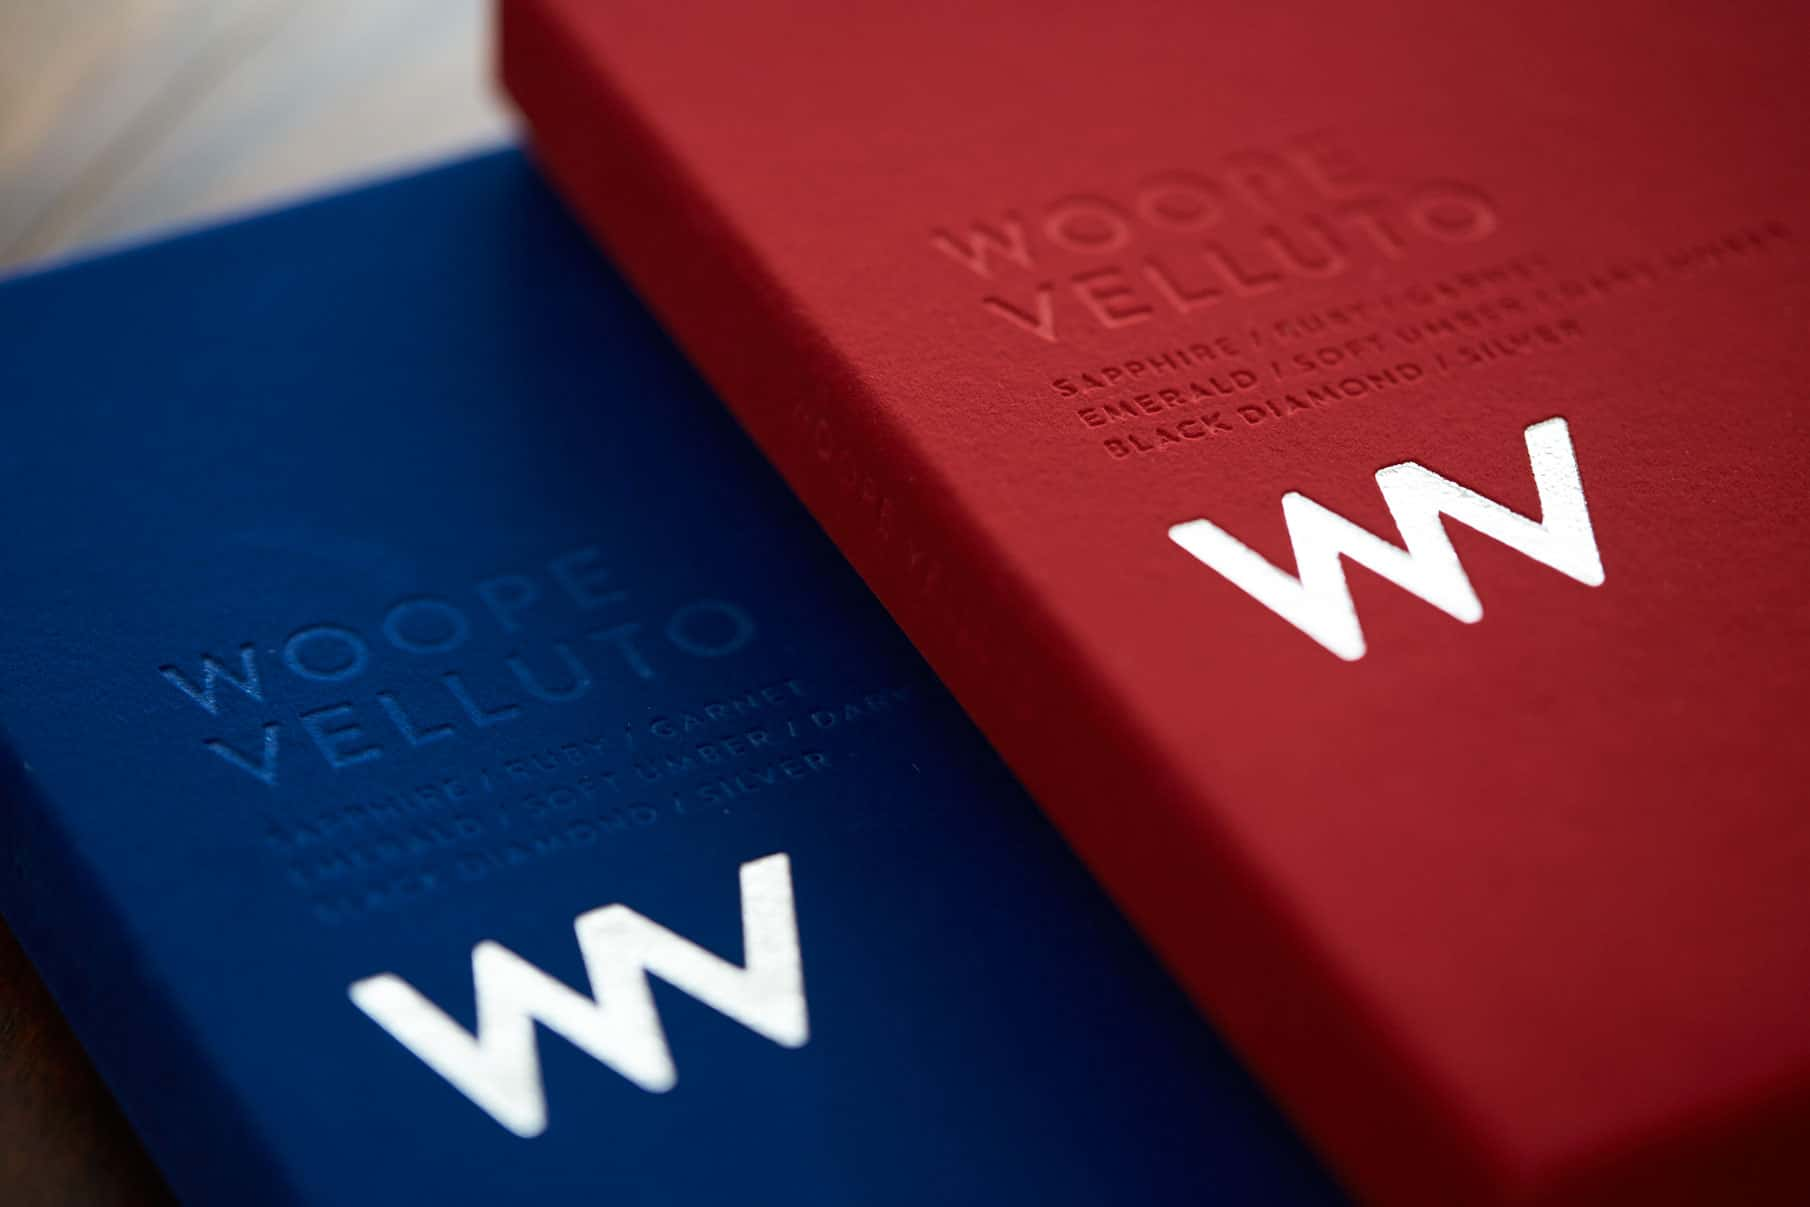 Woope Velluto - Promotion Box 2